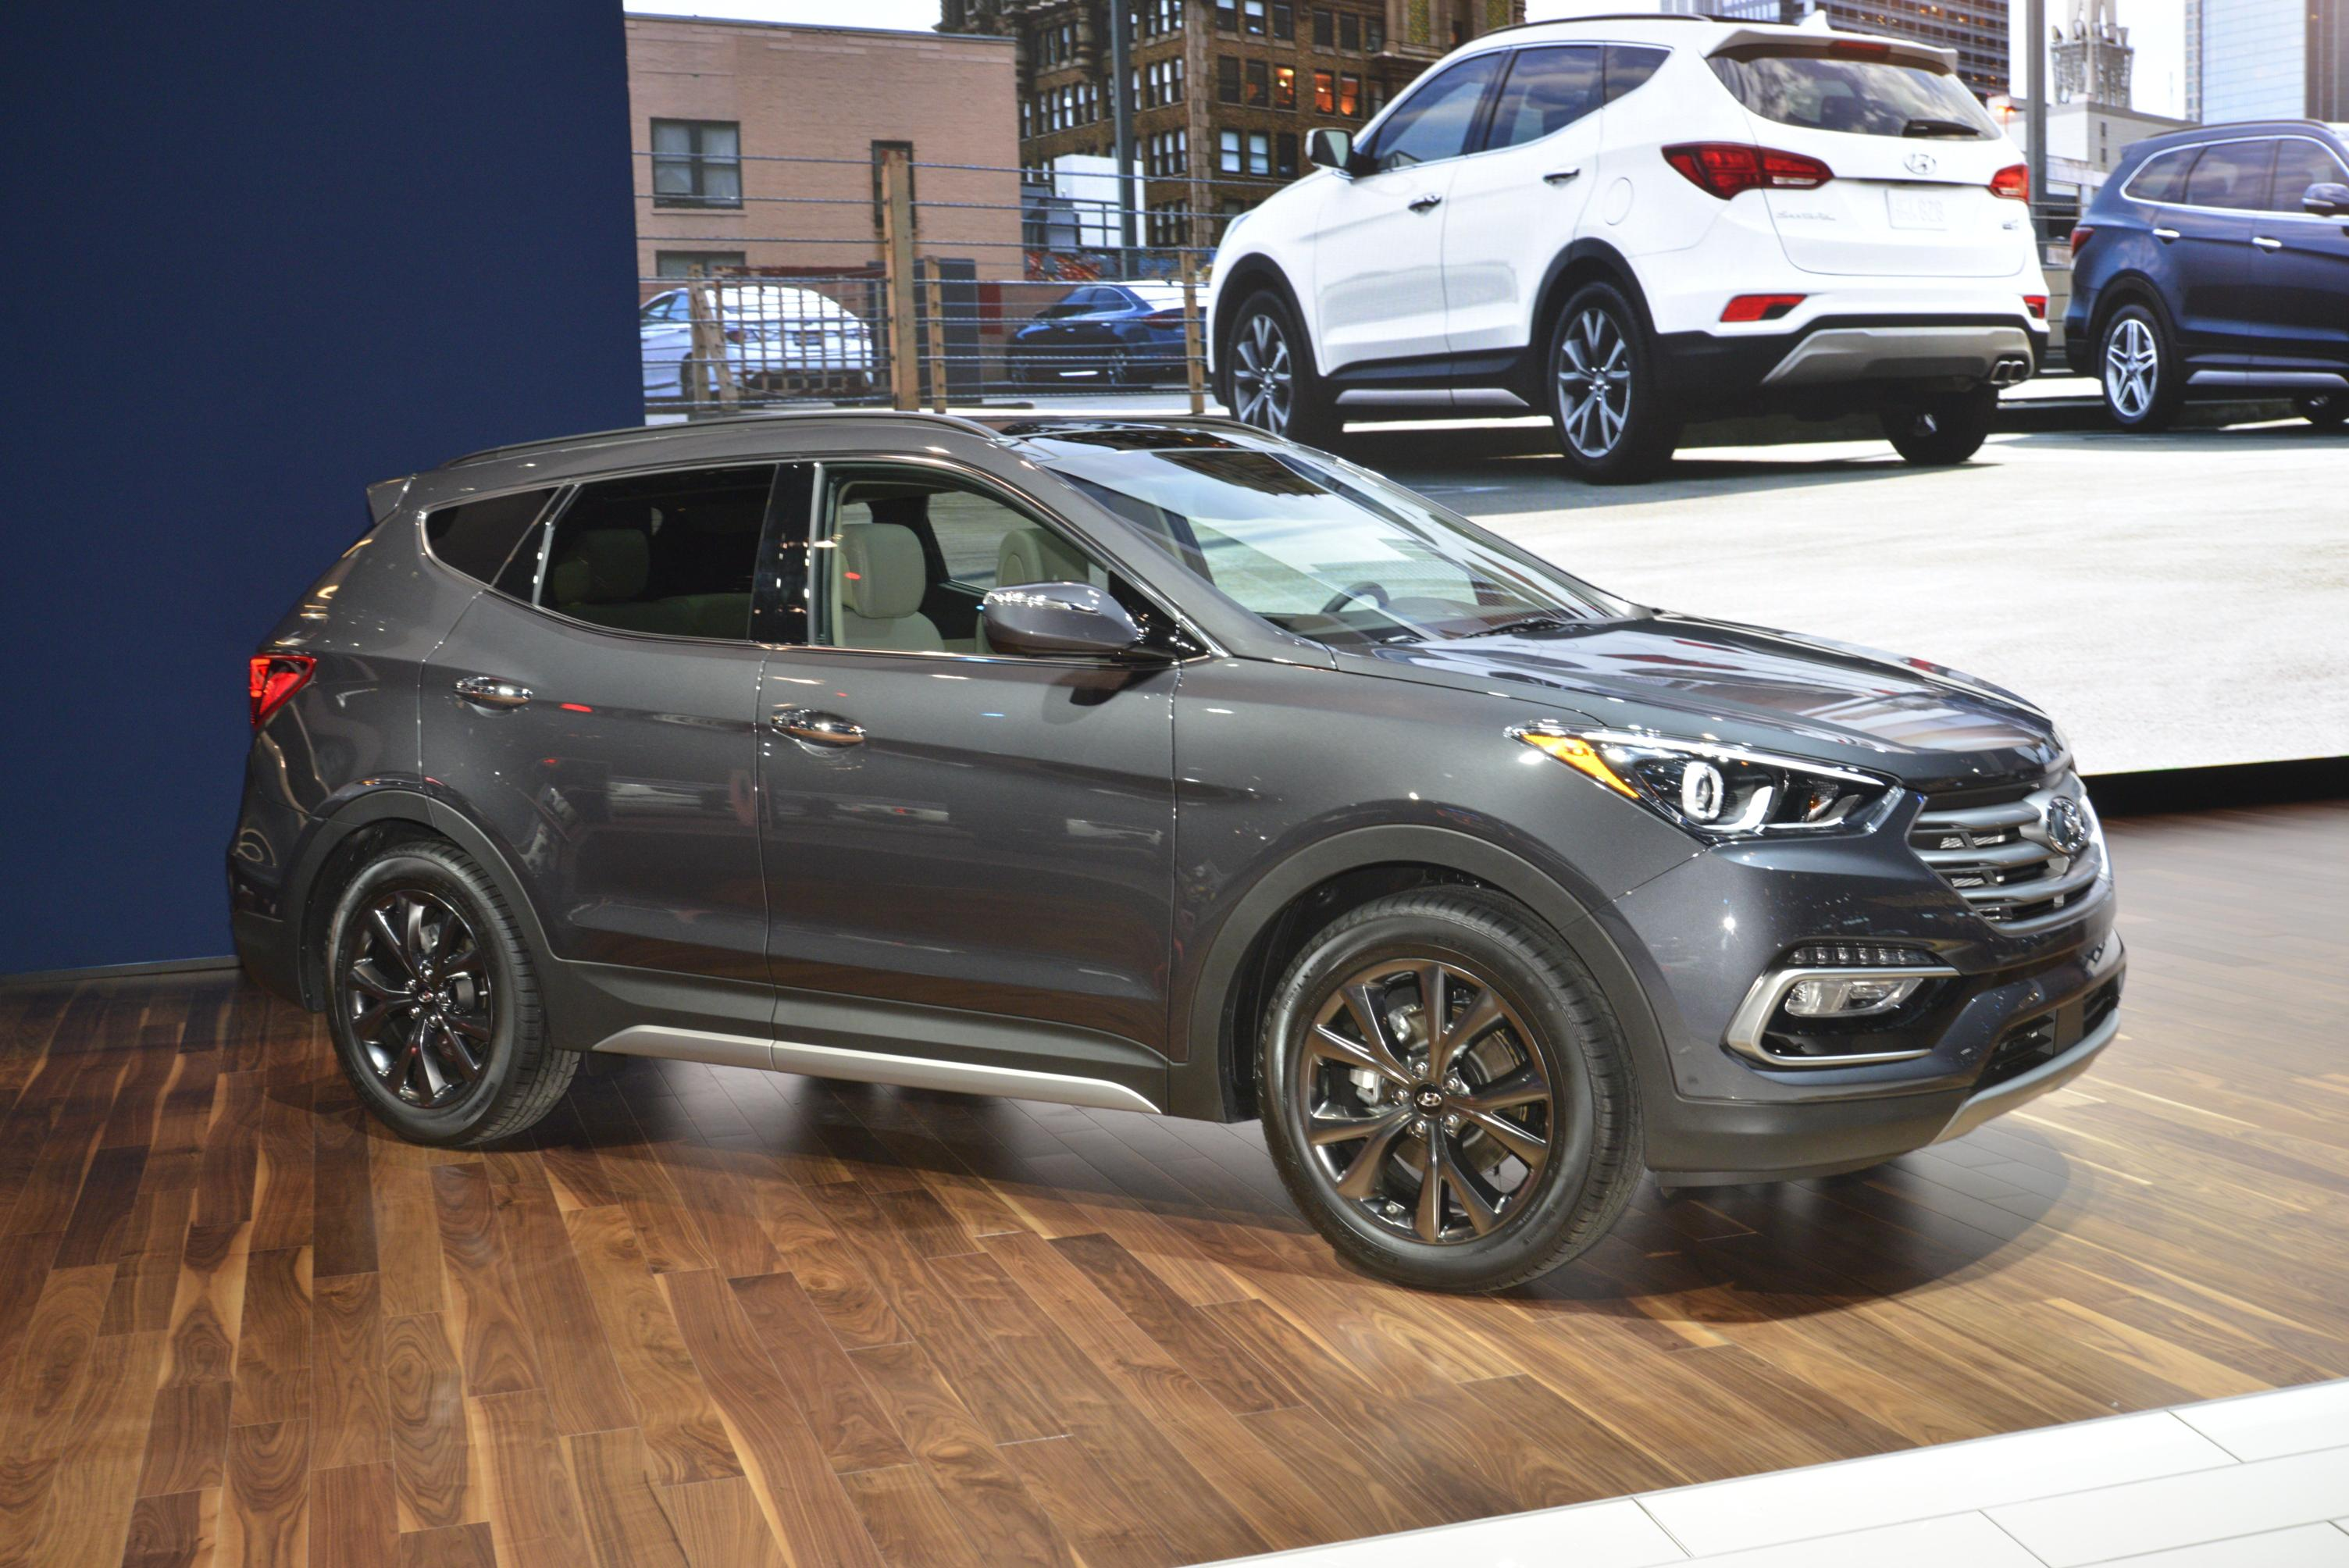 2017 hyundai santa fe thinks it 39 s got a sexy facelift in chicago autoevolution. Black Bedroom Furniture Sets. Home Design Ideas